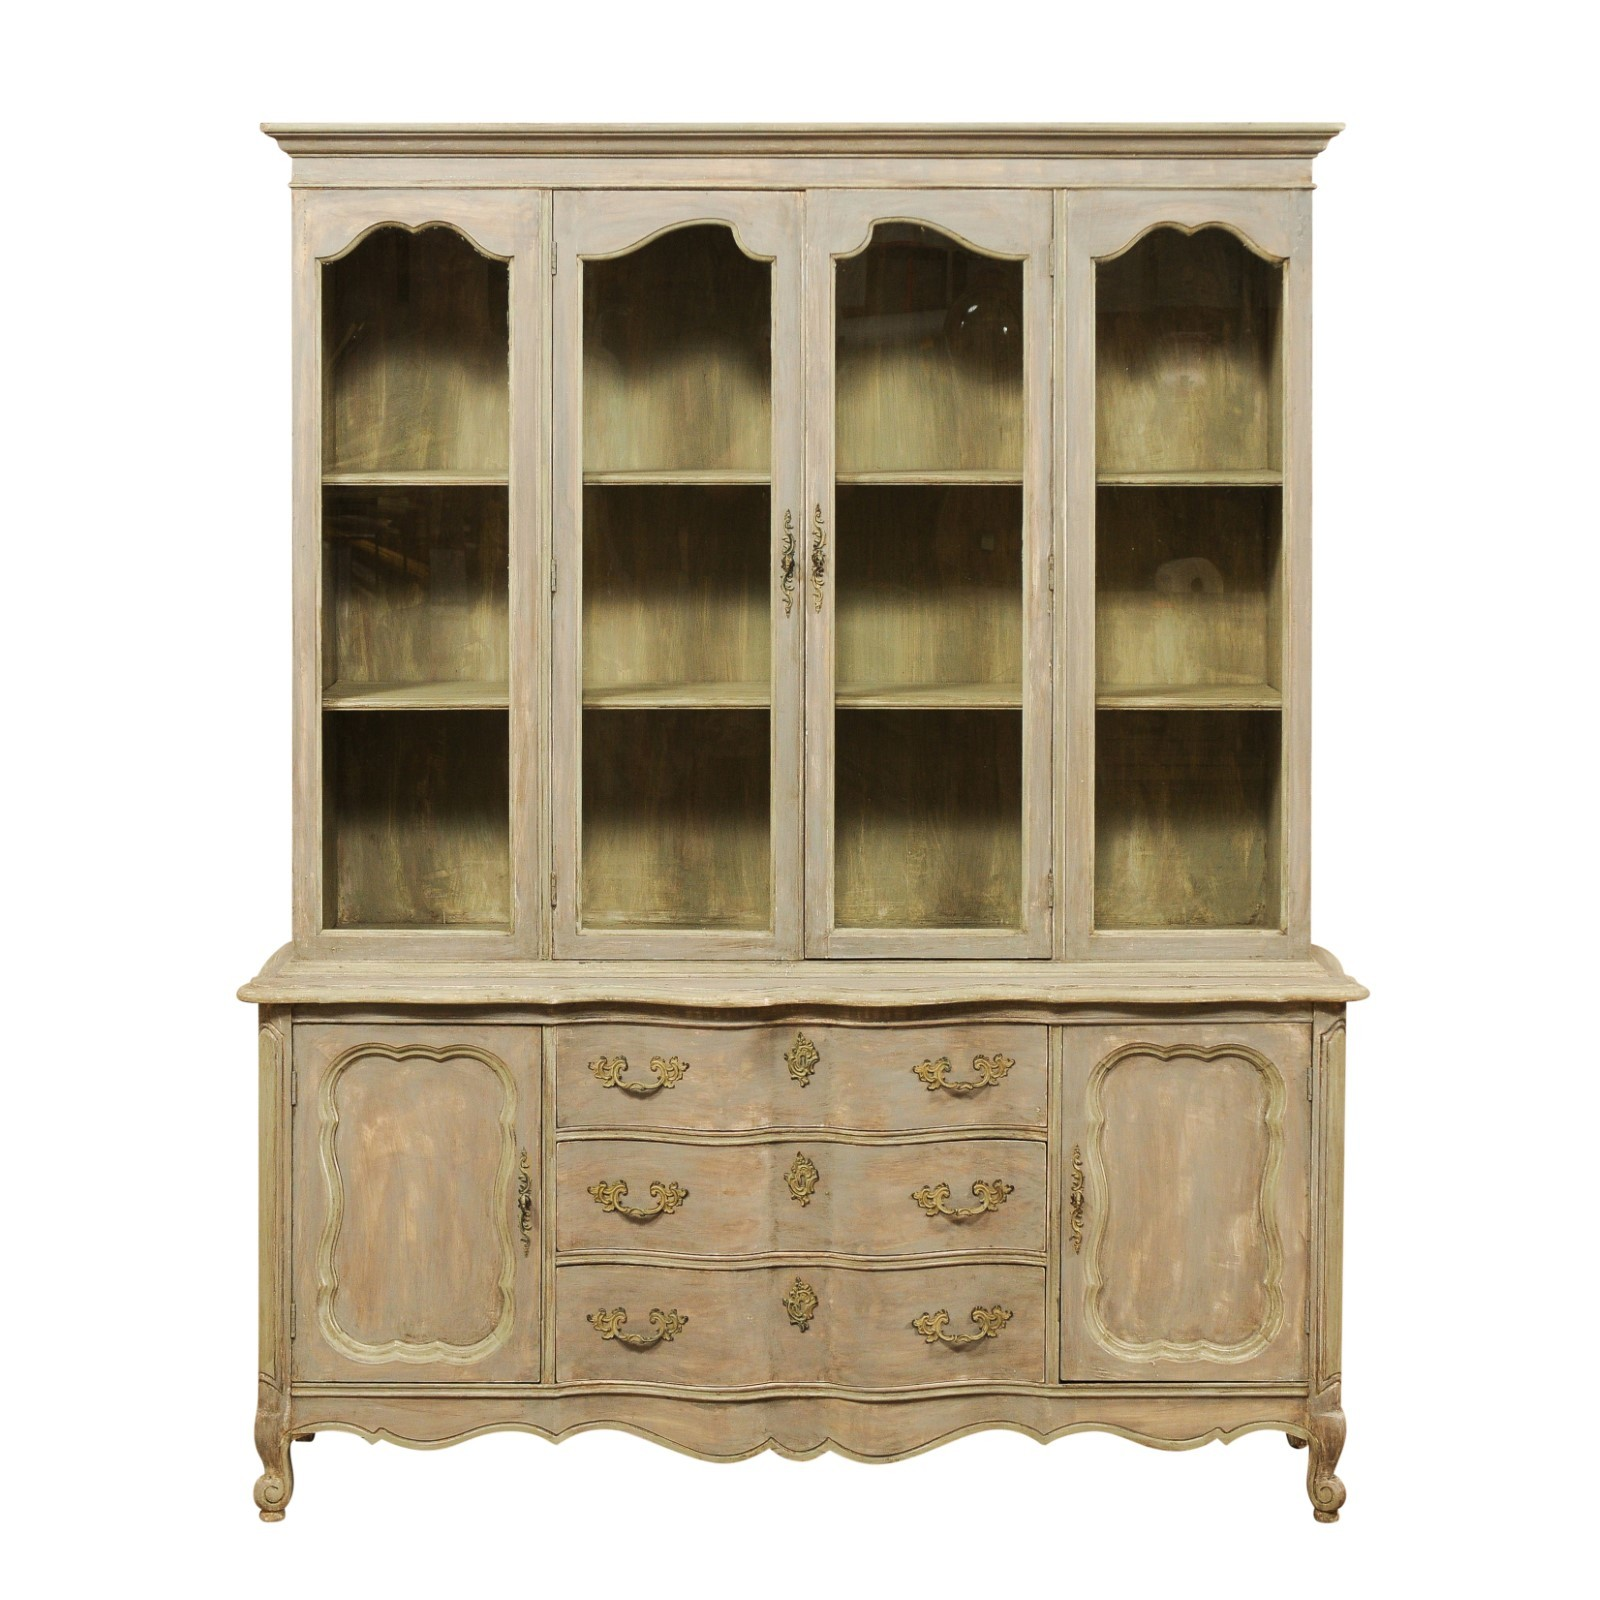 French Style Display & Storage Cabinet